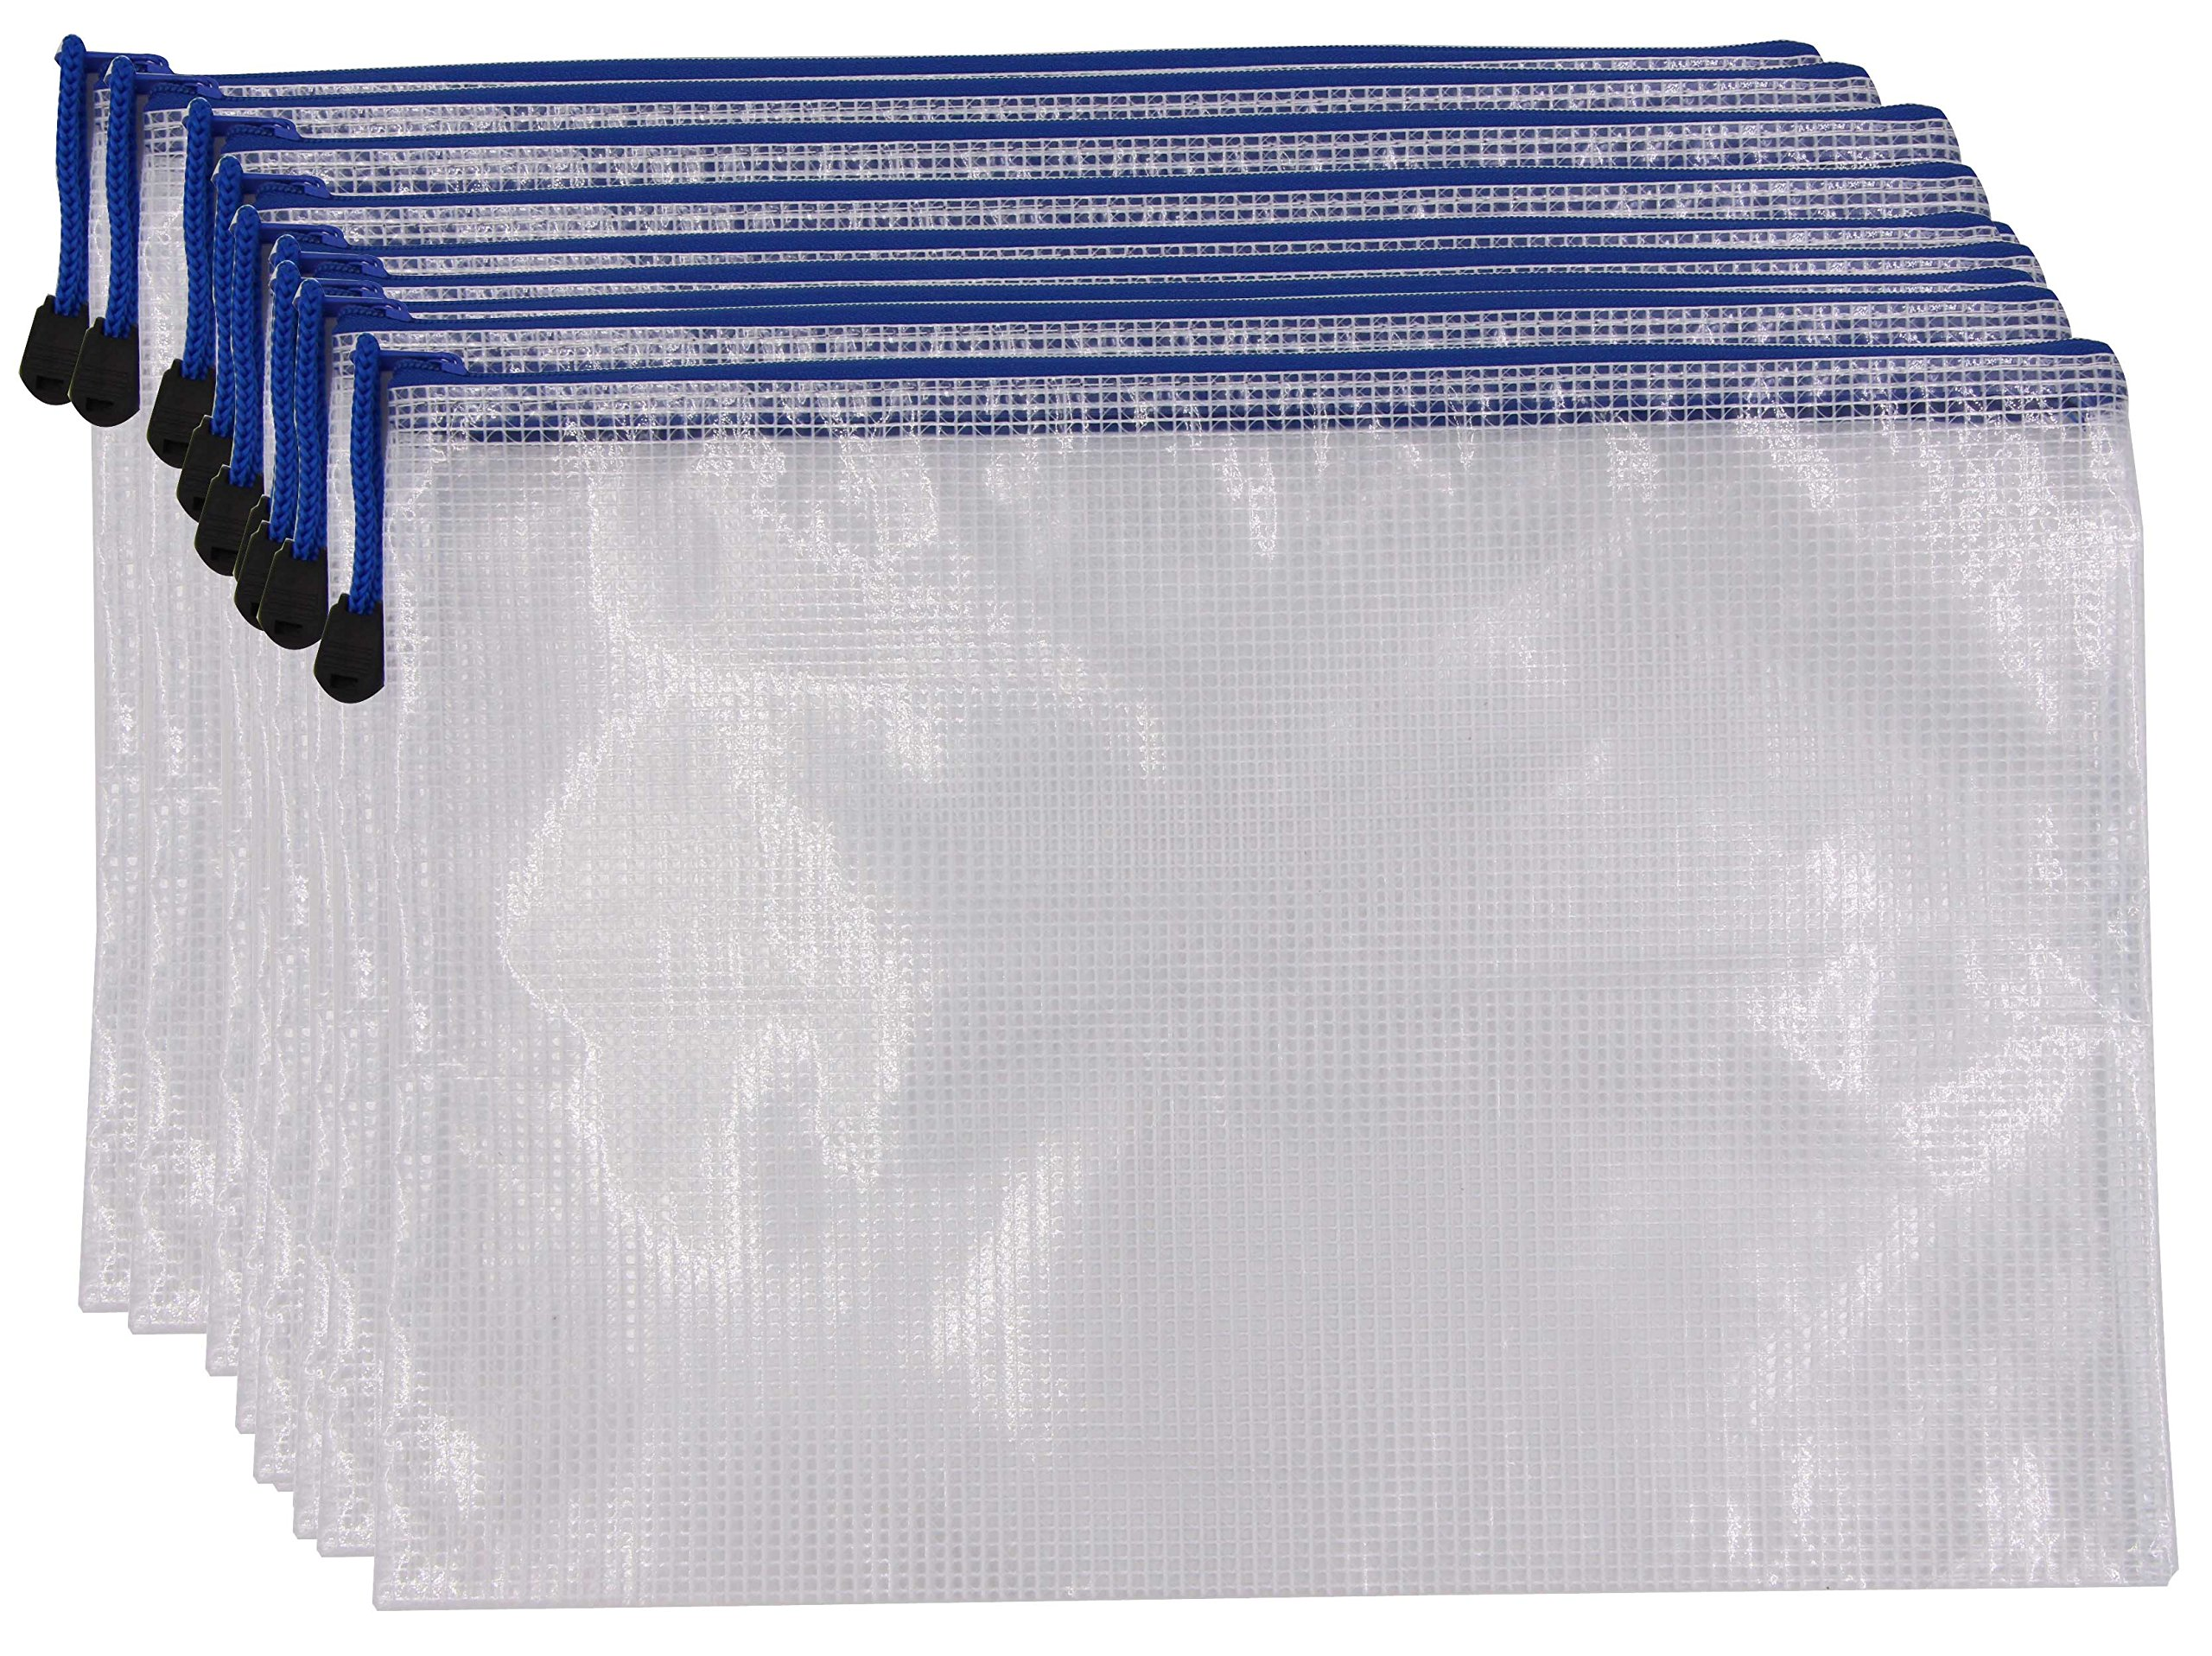 Zipper File Folder Bags - 10pcs Legal A4 Size Paper Document Pouches Clip-On Zippered Mesh Waterproof Files Storage Organizer Protector for Documents Newspapers Receipts Magazines (A4, White, 10)